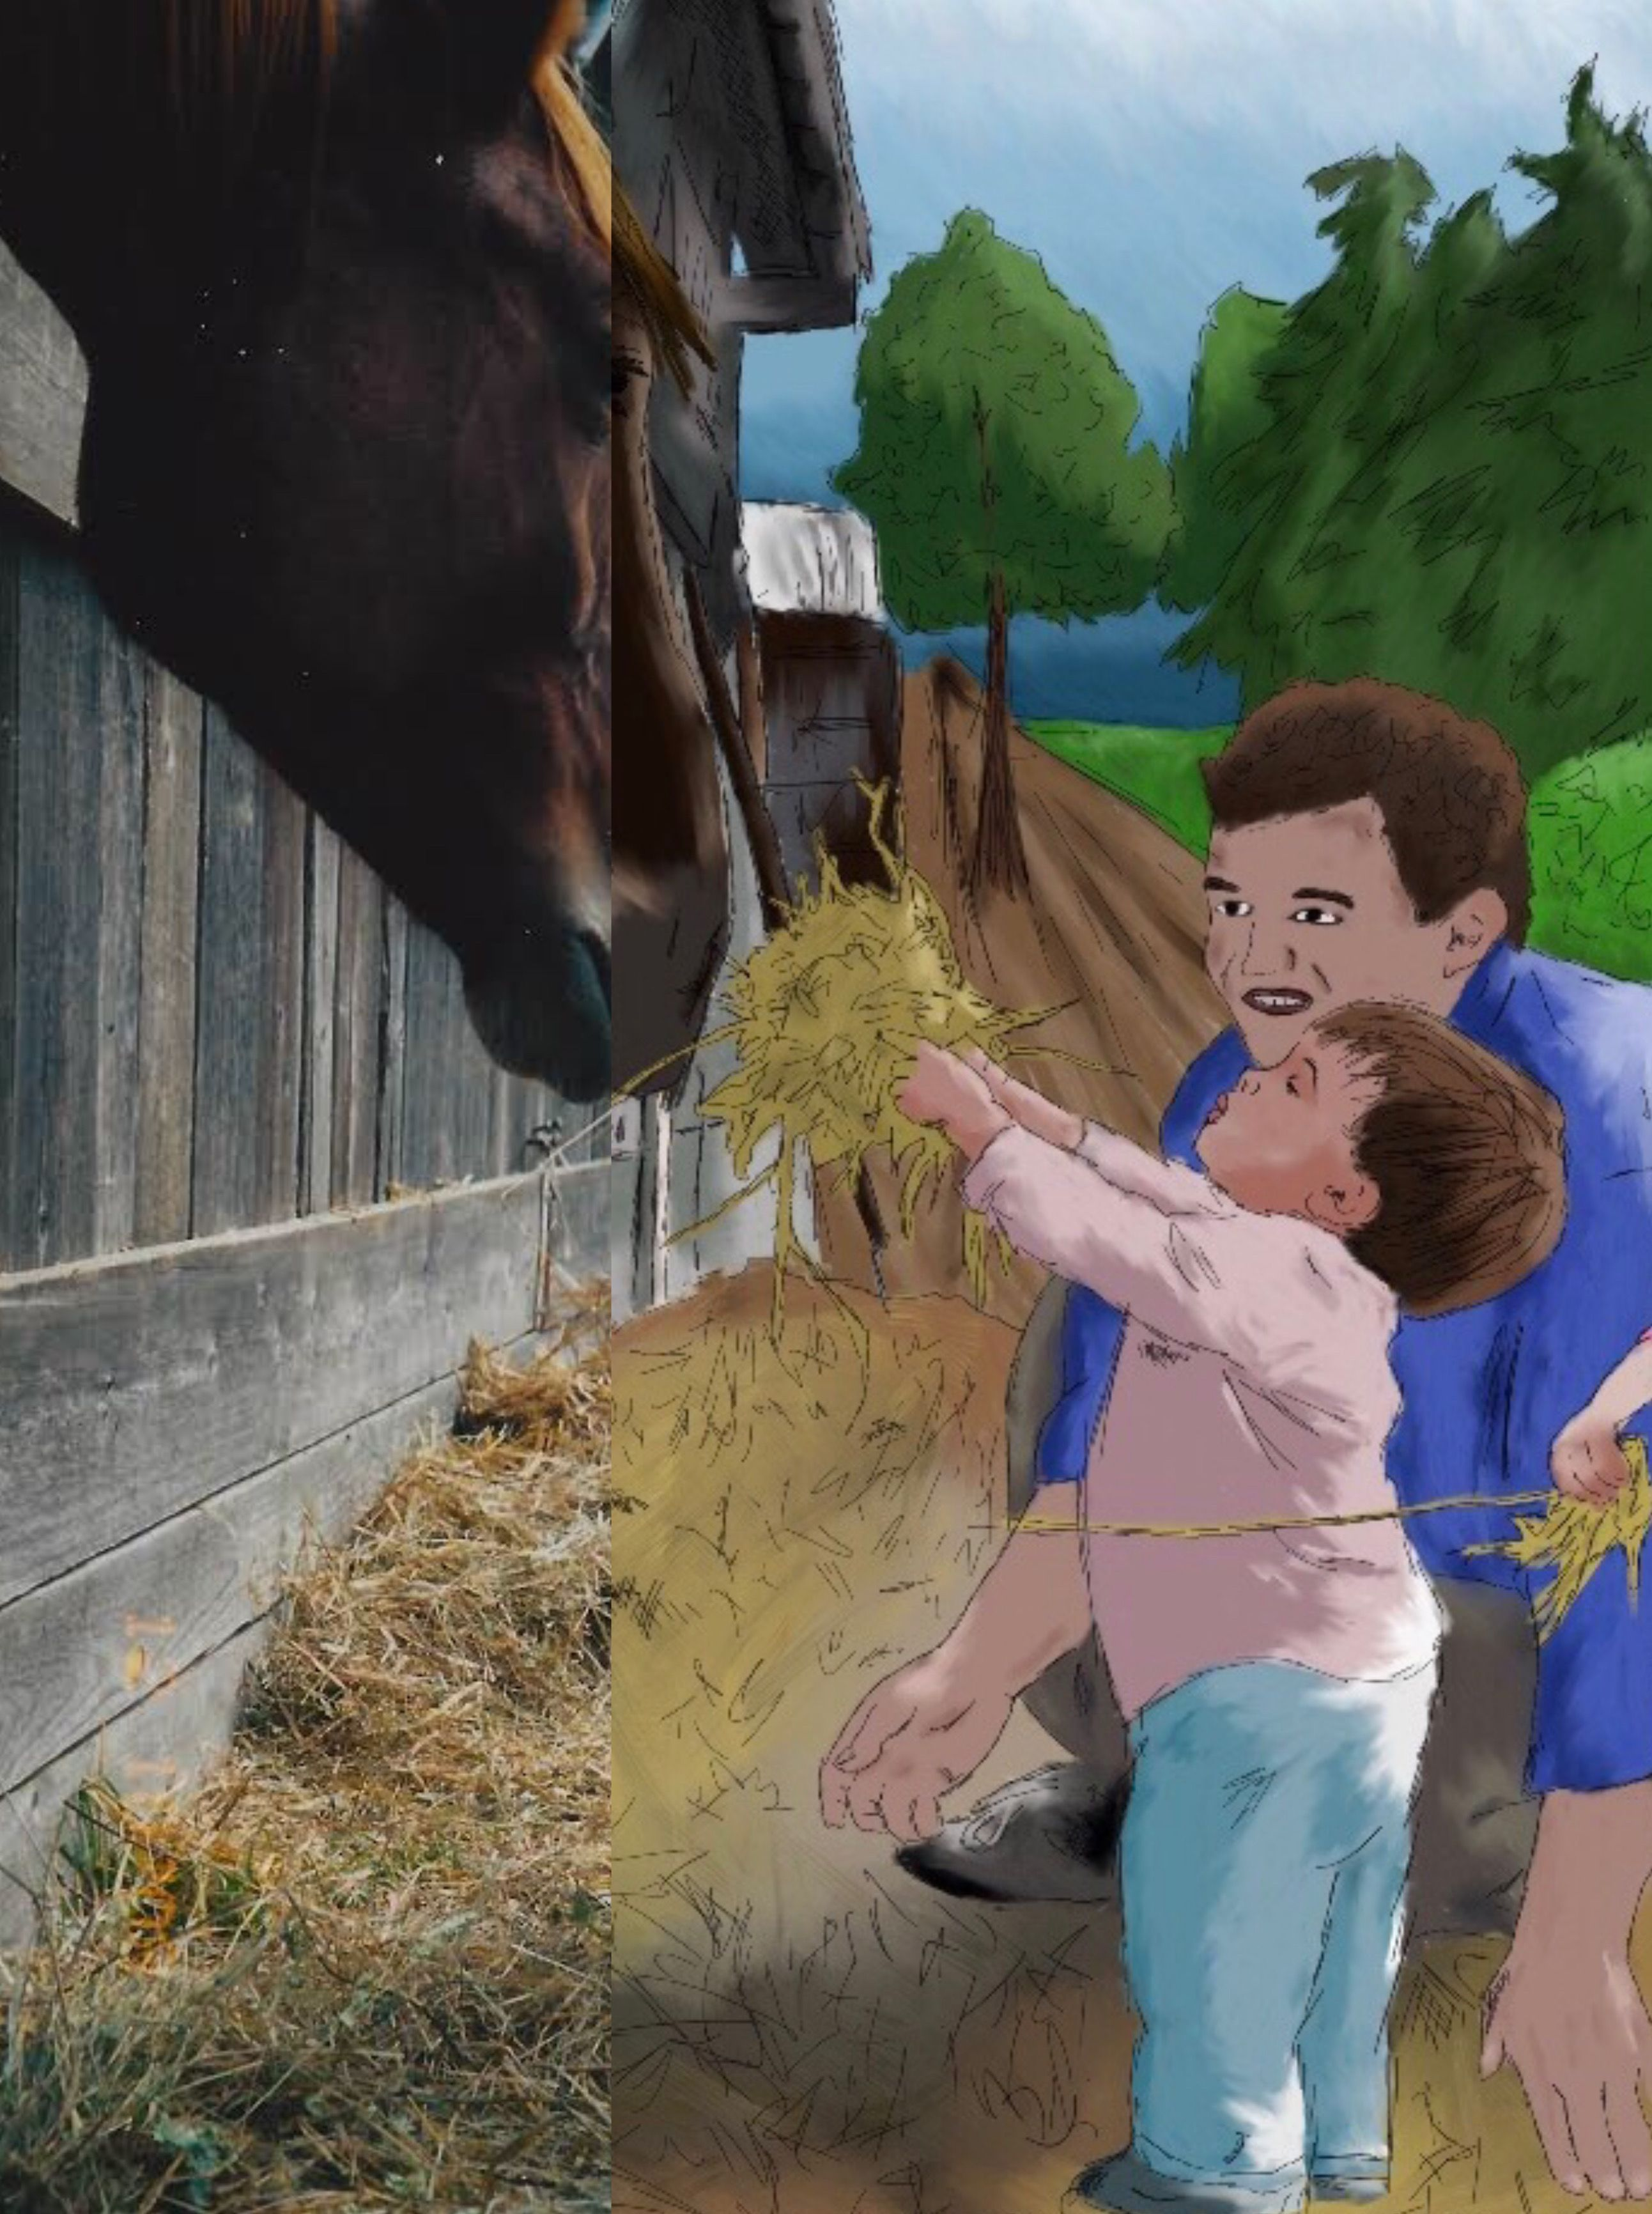 #dad #horses #day #love #family #dadandson #daddydaughter #goodday #drawing #graphicdesign #coreldraw #photoshop #edit